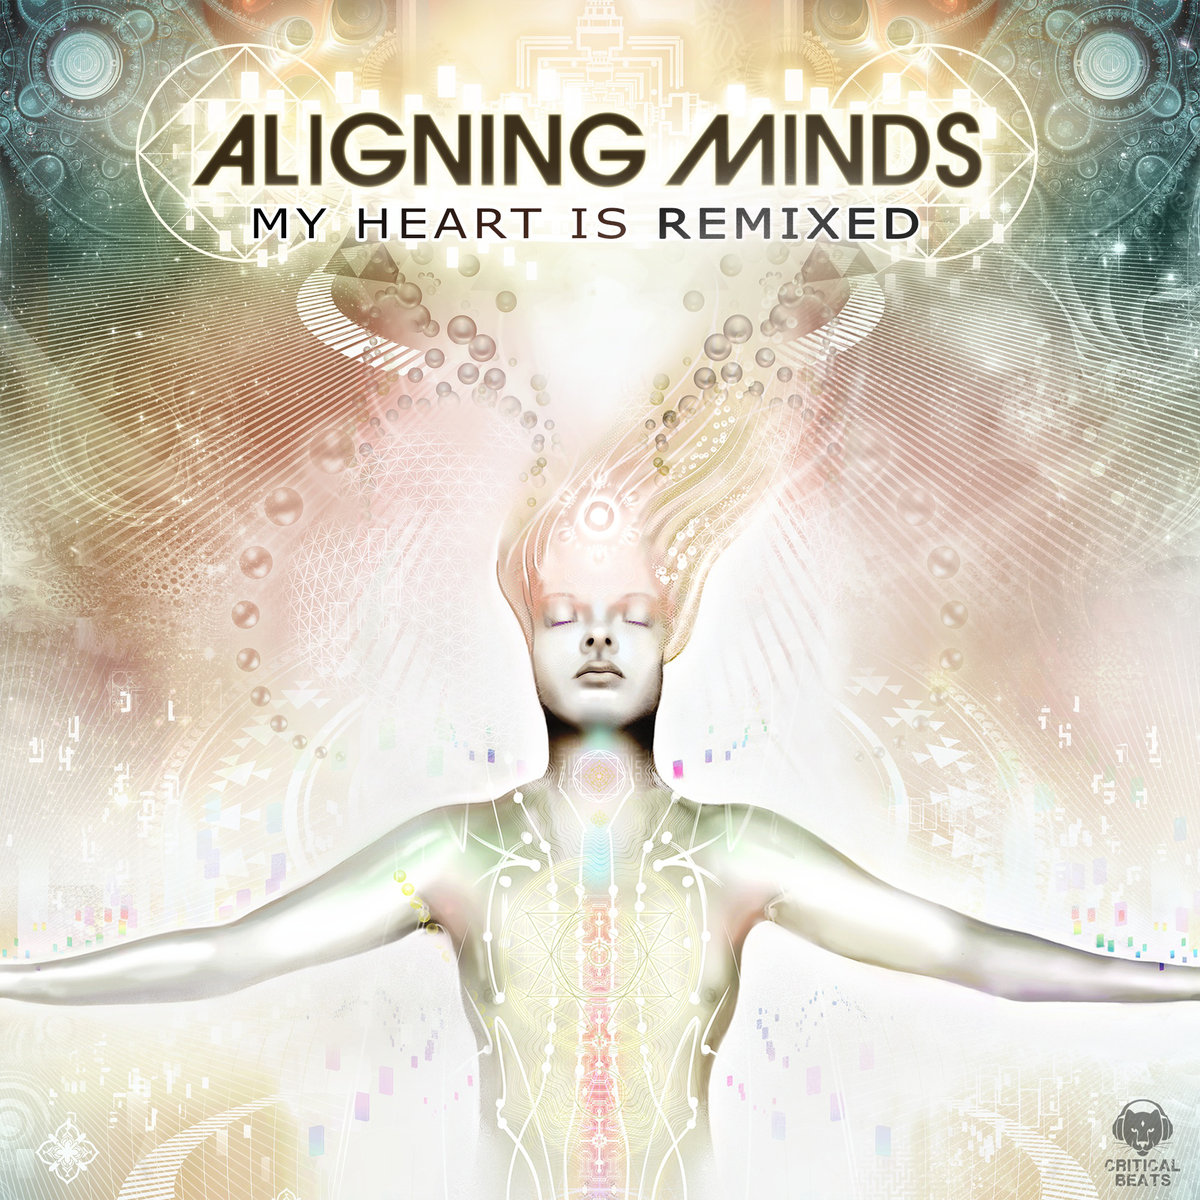 Aligning Minds - Oak Kalendar (Krusseldorf Remix) @ 'My Heart Is Remixed' album (asheville, baltimore)